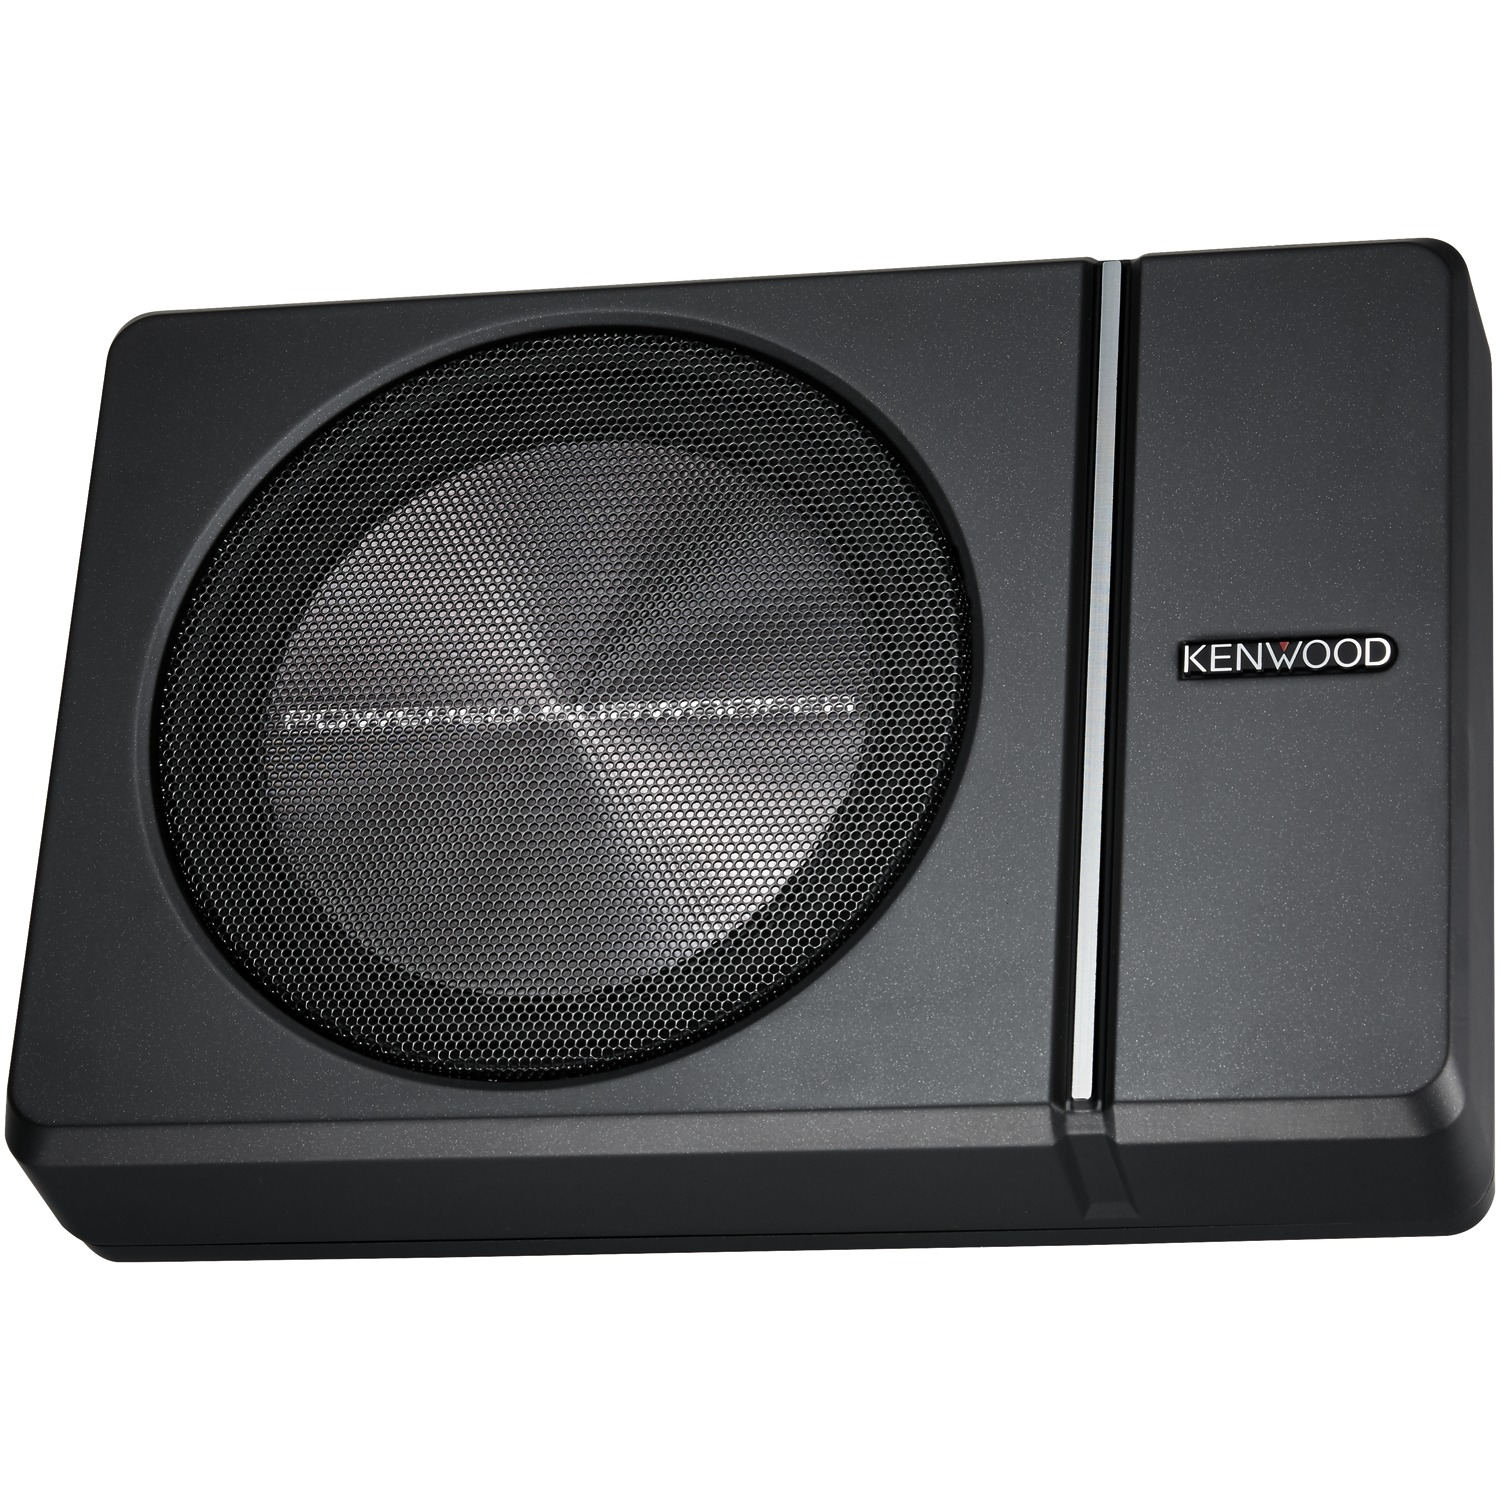 Kenwood KSC-PSW8 Ksc-Psw8 250W Compact Powered Subwoofer